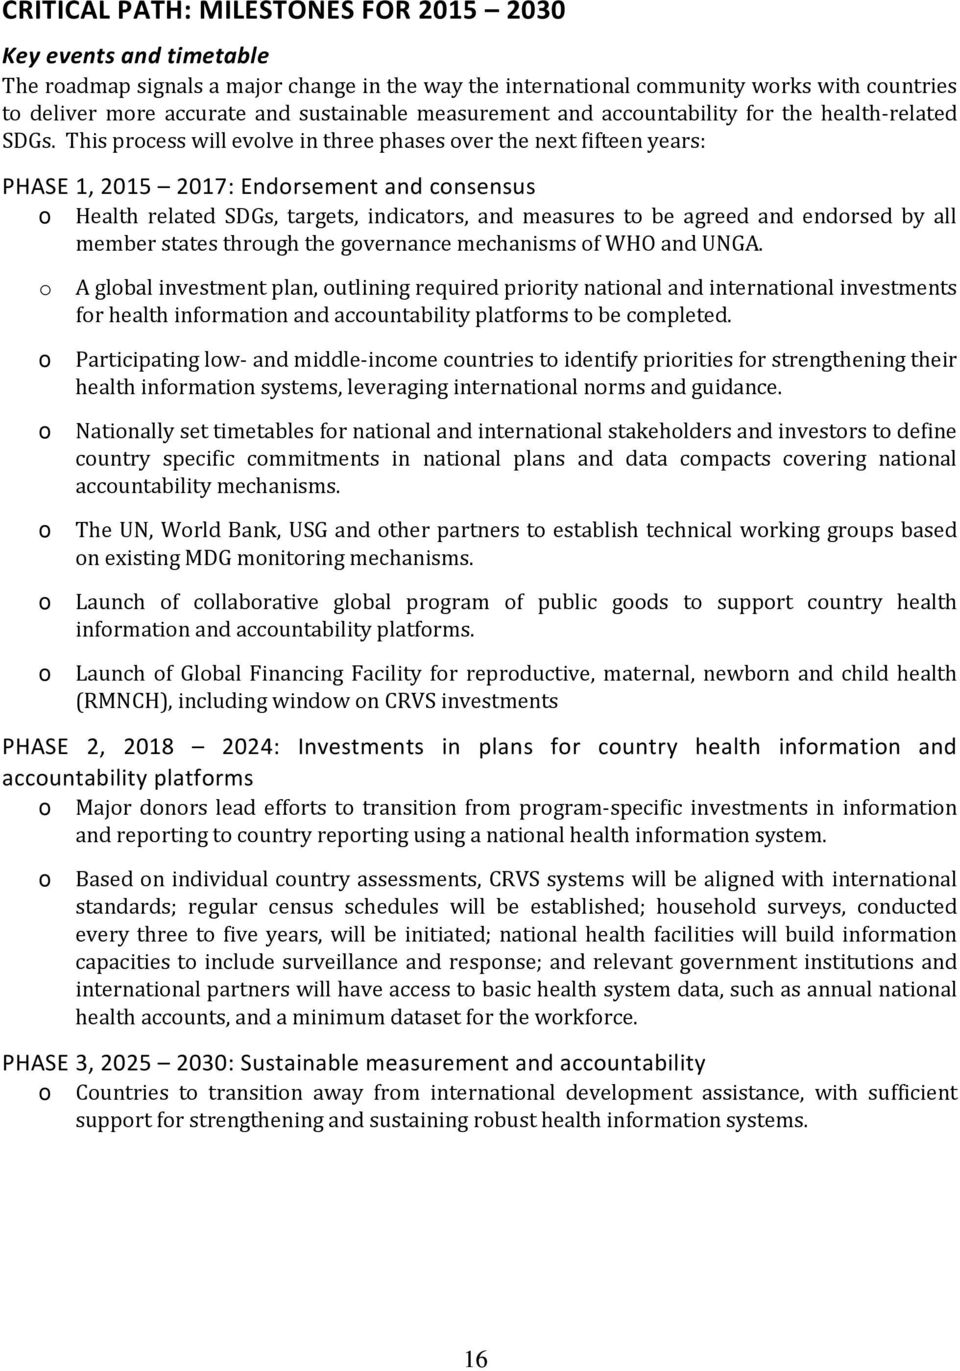 This prcess will evlve in three phases ver the next fifteen years: PHASE 1, 2015 2017: Endrsement and cnsensus Health related SDGs, targets, indicatrs, and measures t be agreed and endrsed by all